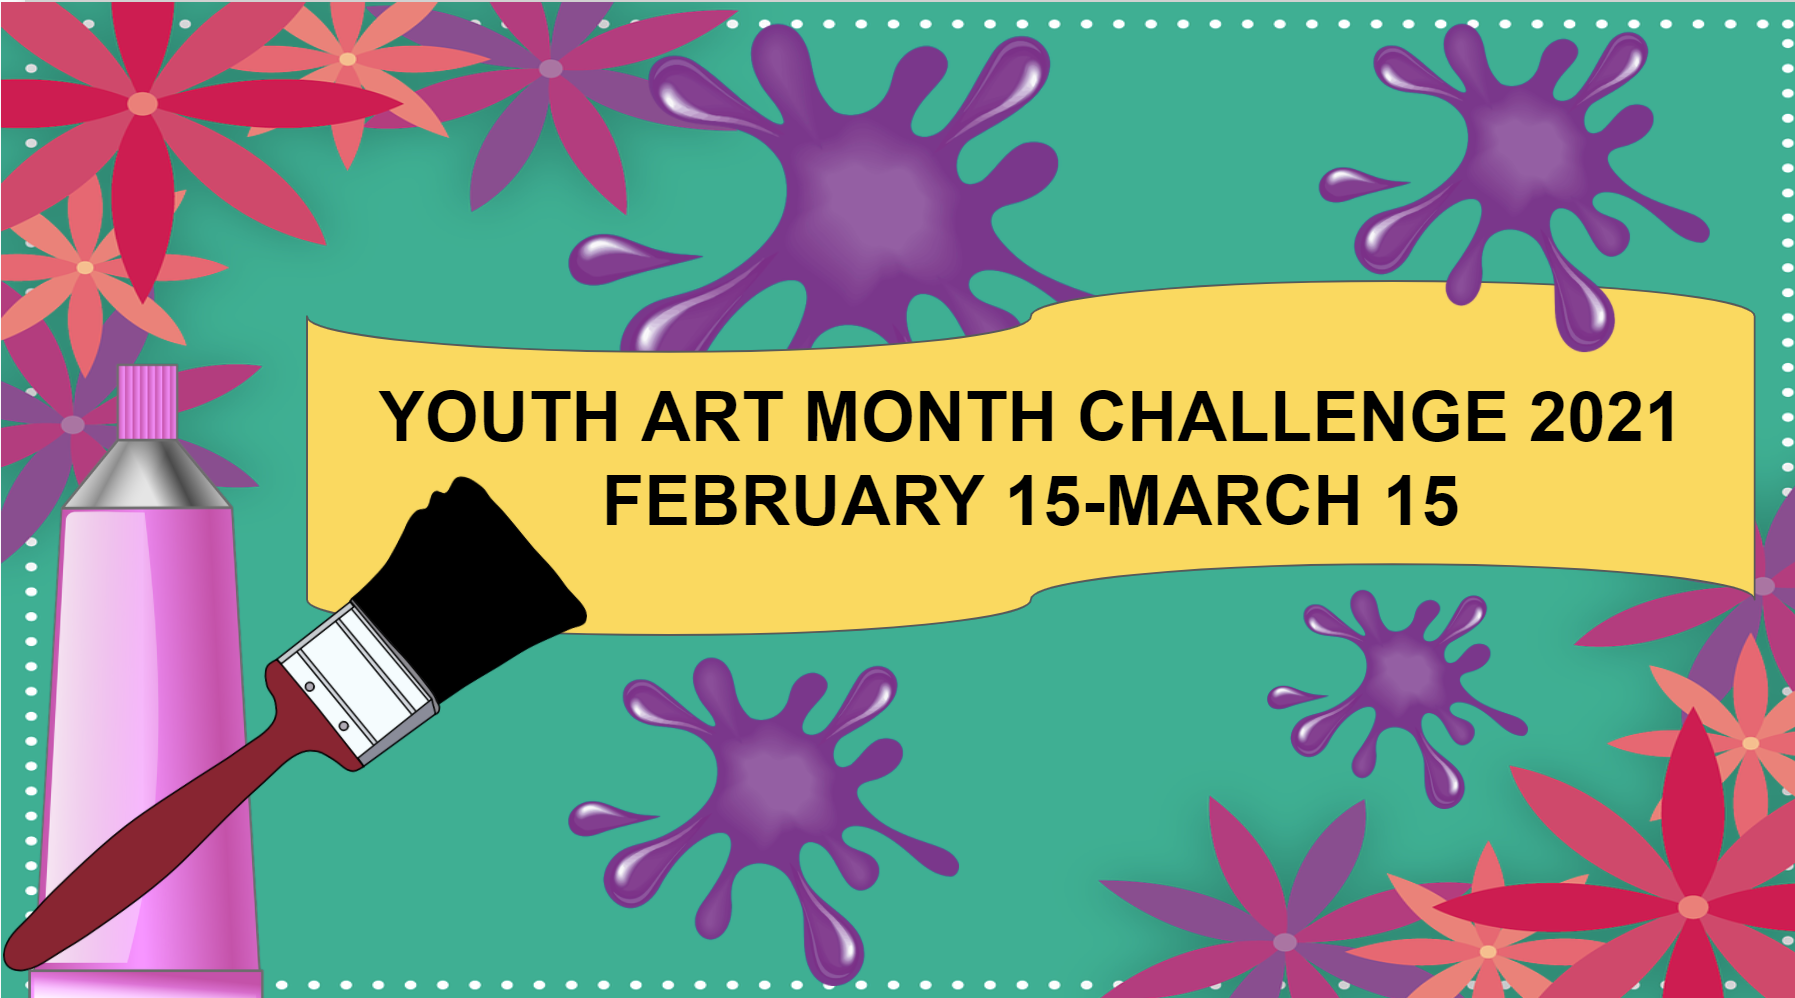 Youth Art Month Image